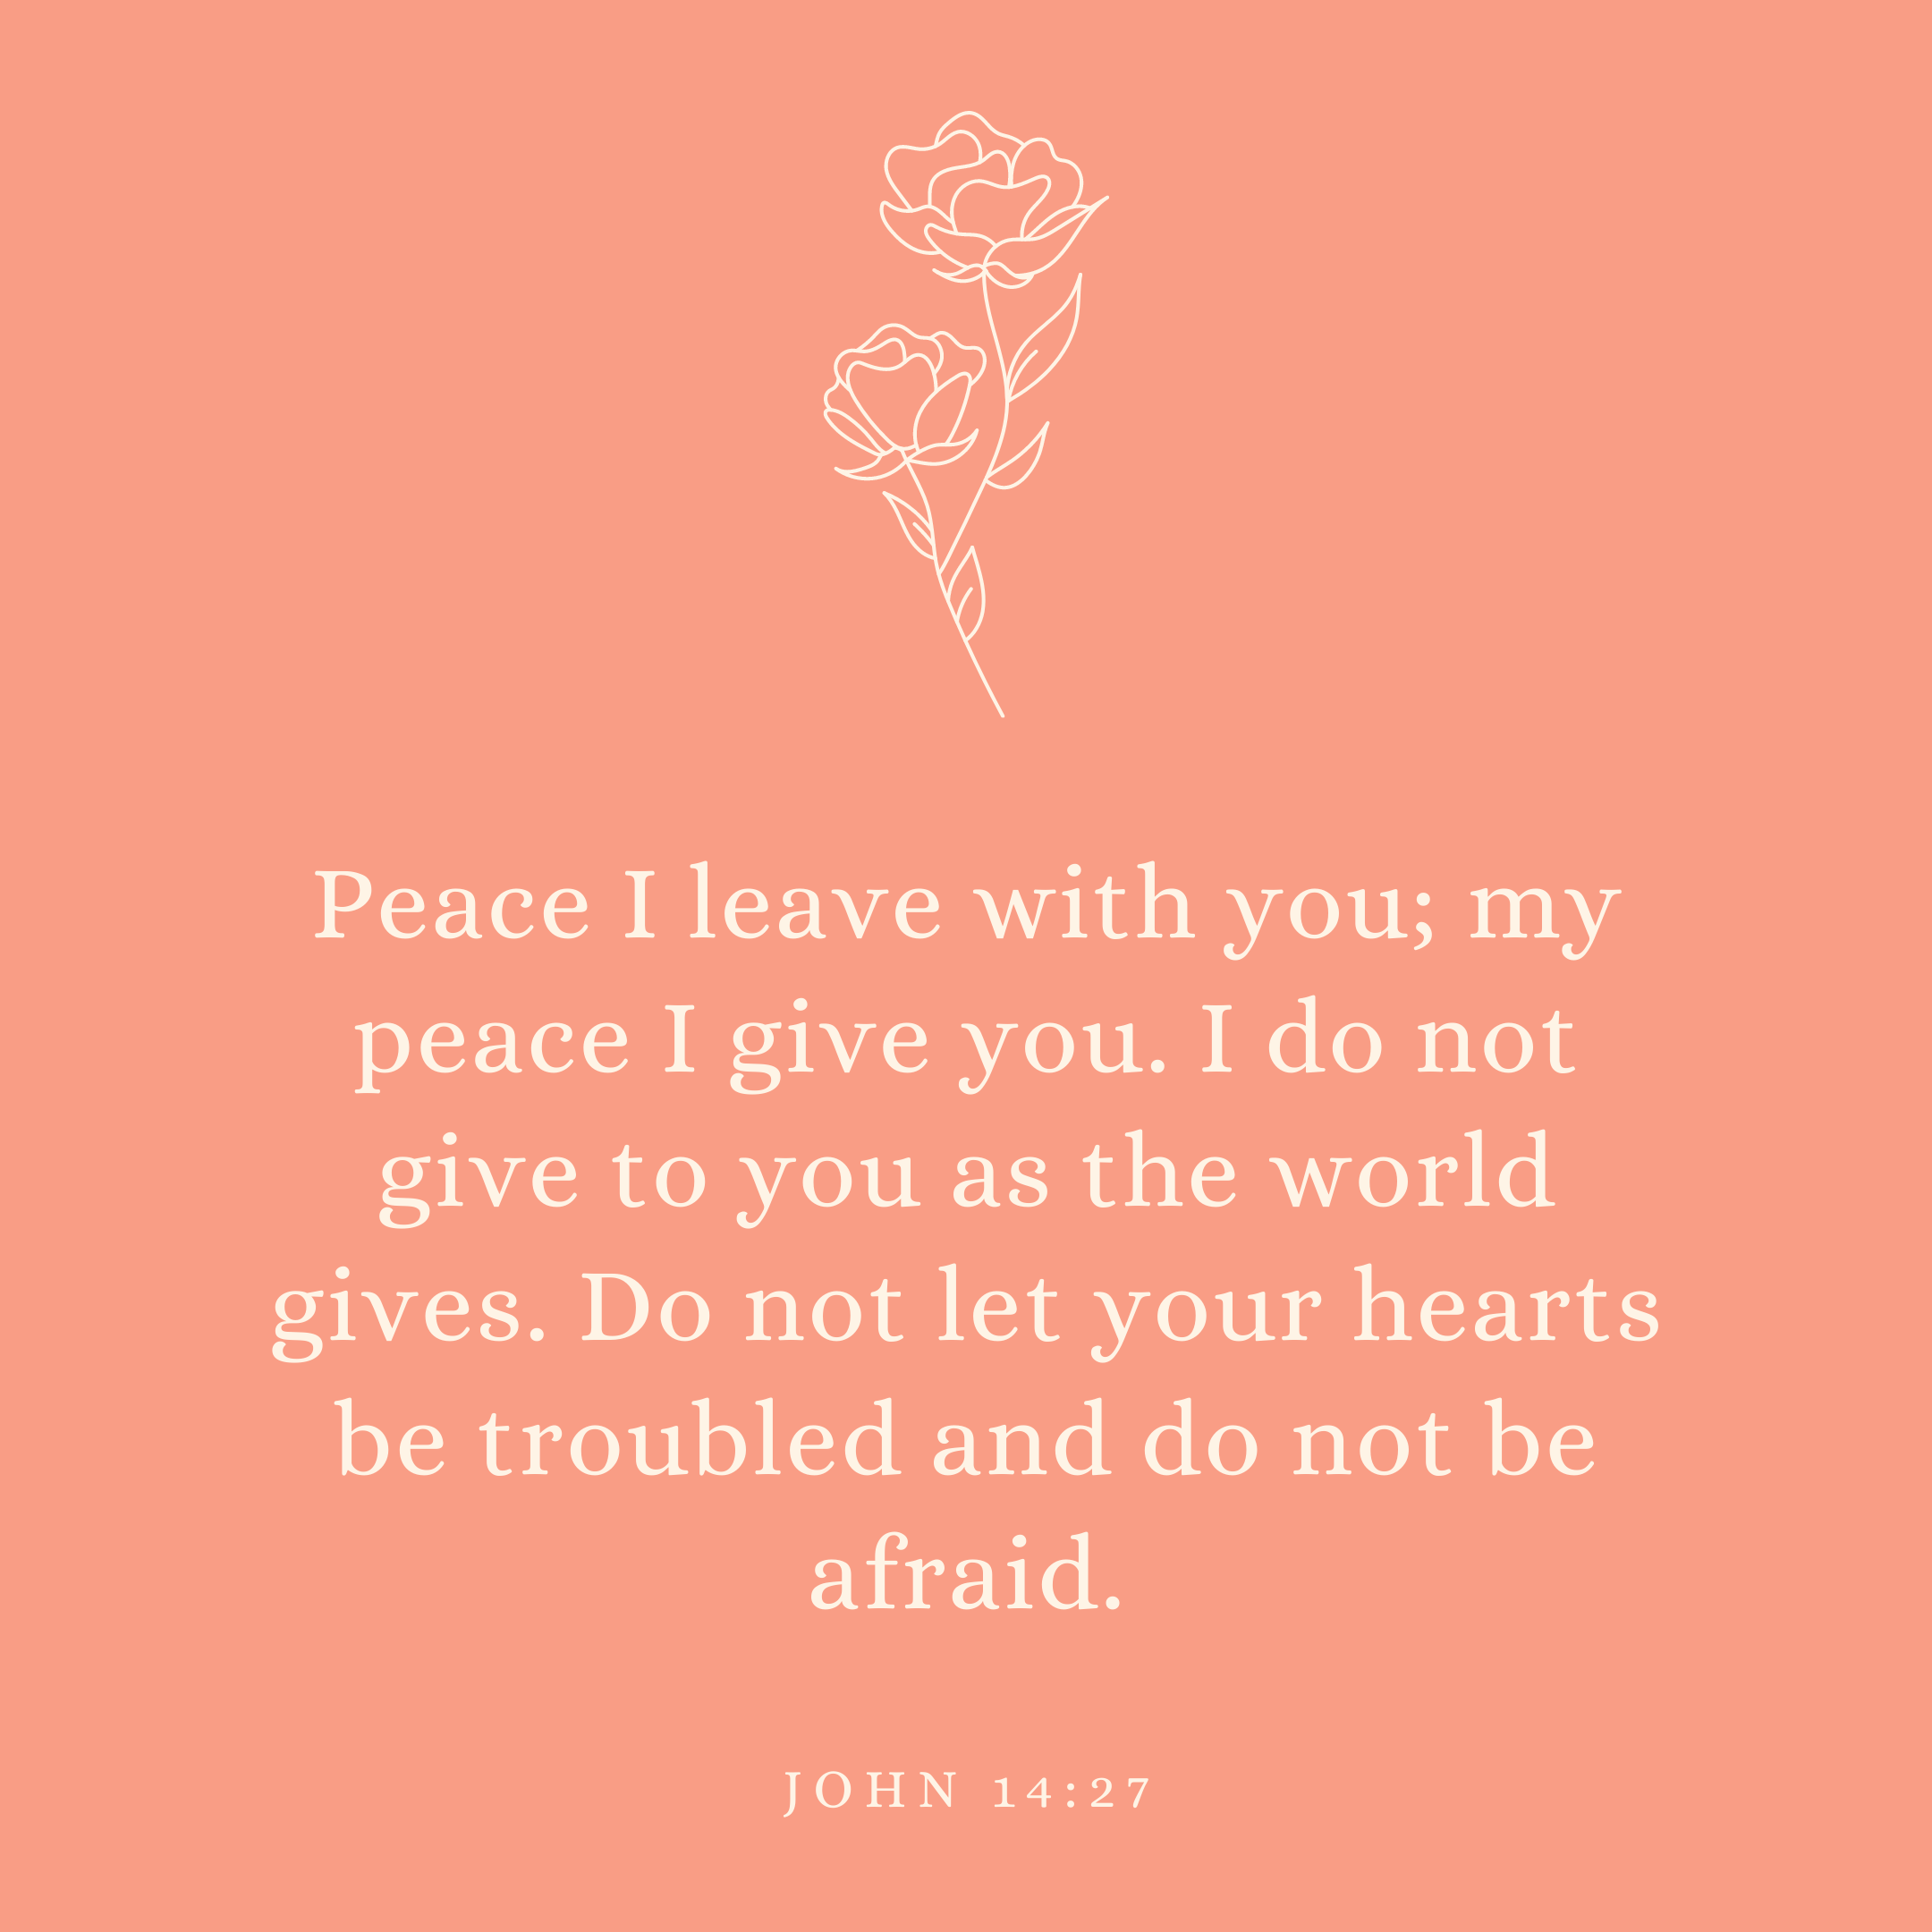 John 14:27 Peace I leave with you; my peace I give you. I do not give to you as the world gives. Do not let your hearts be troubled and do not be afraid.